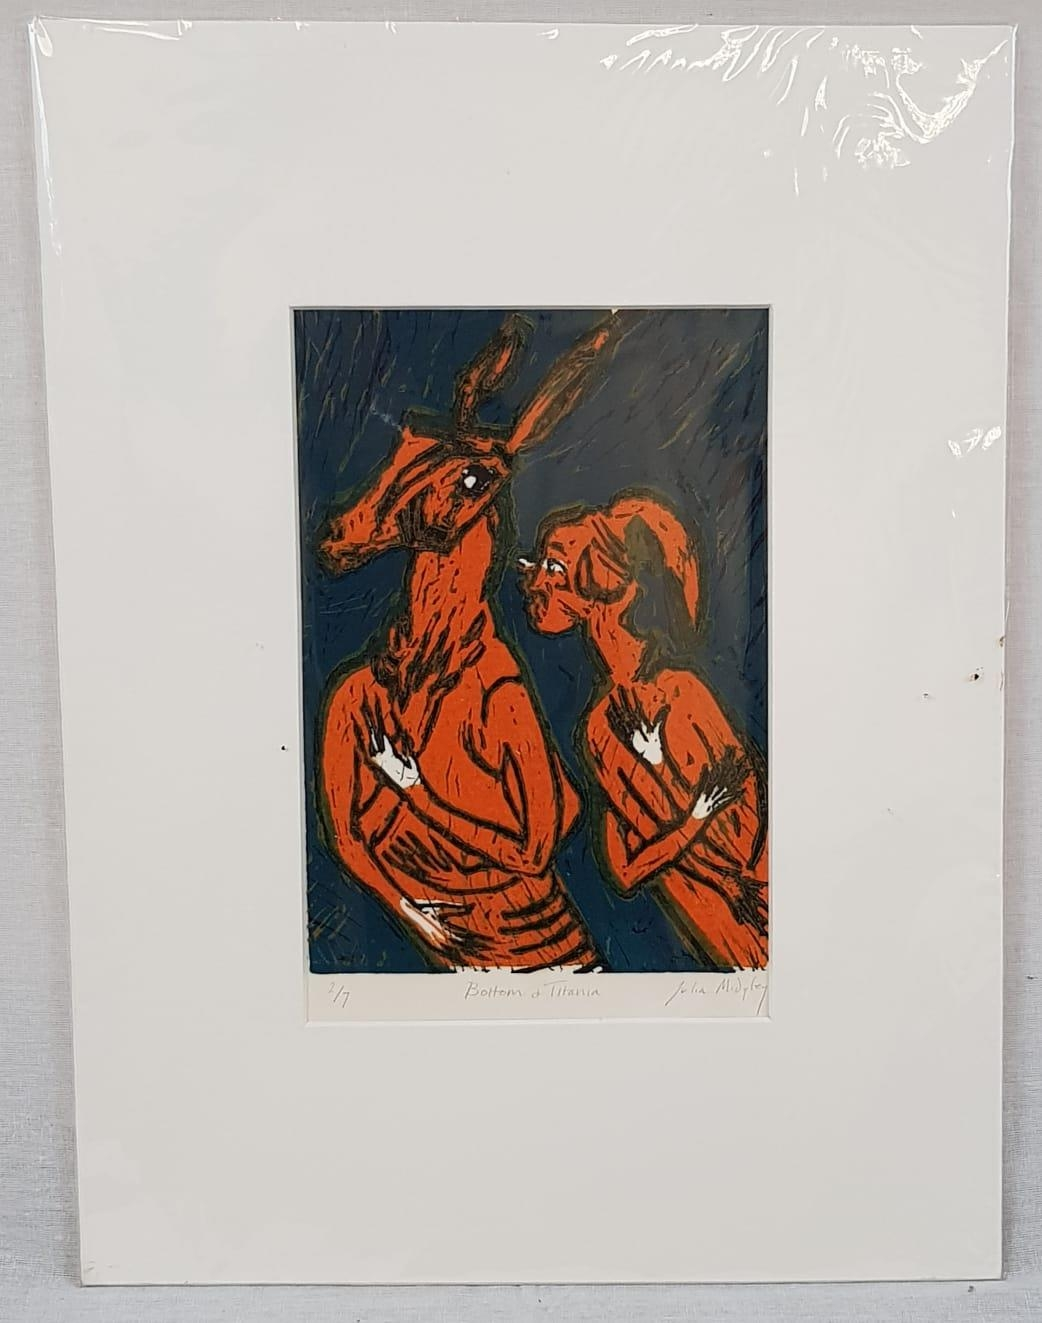 Bottom and Titania by Julia Midgley. A limited edition (2 of 7) linocut print from this celebrated